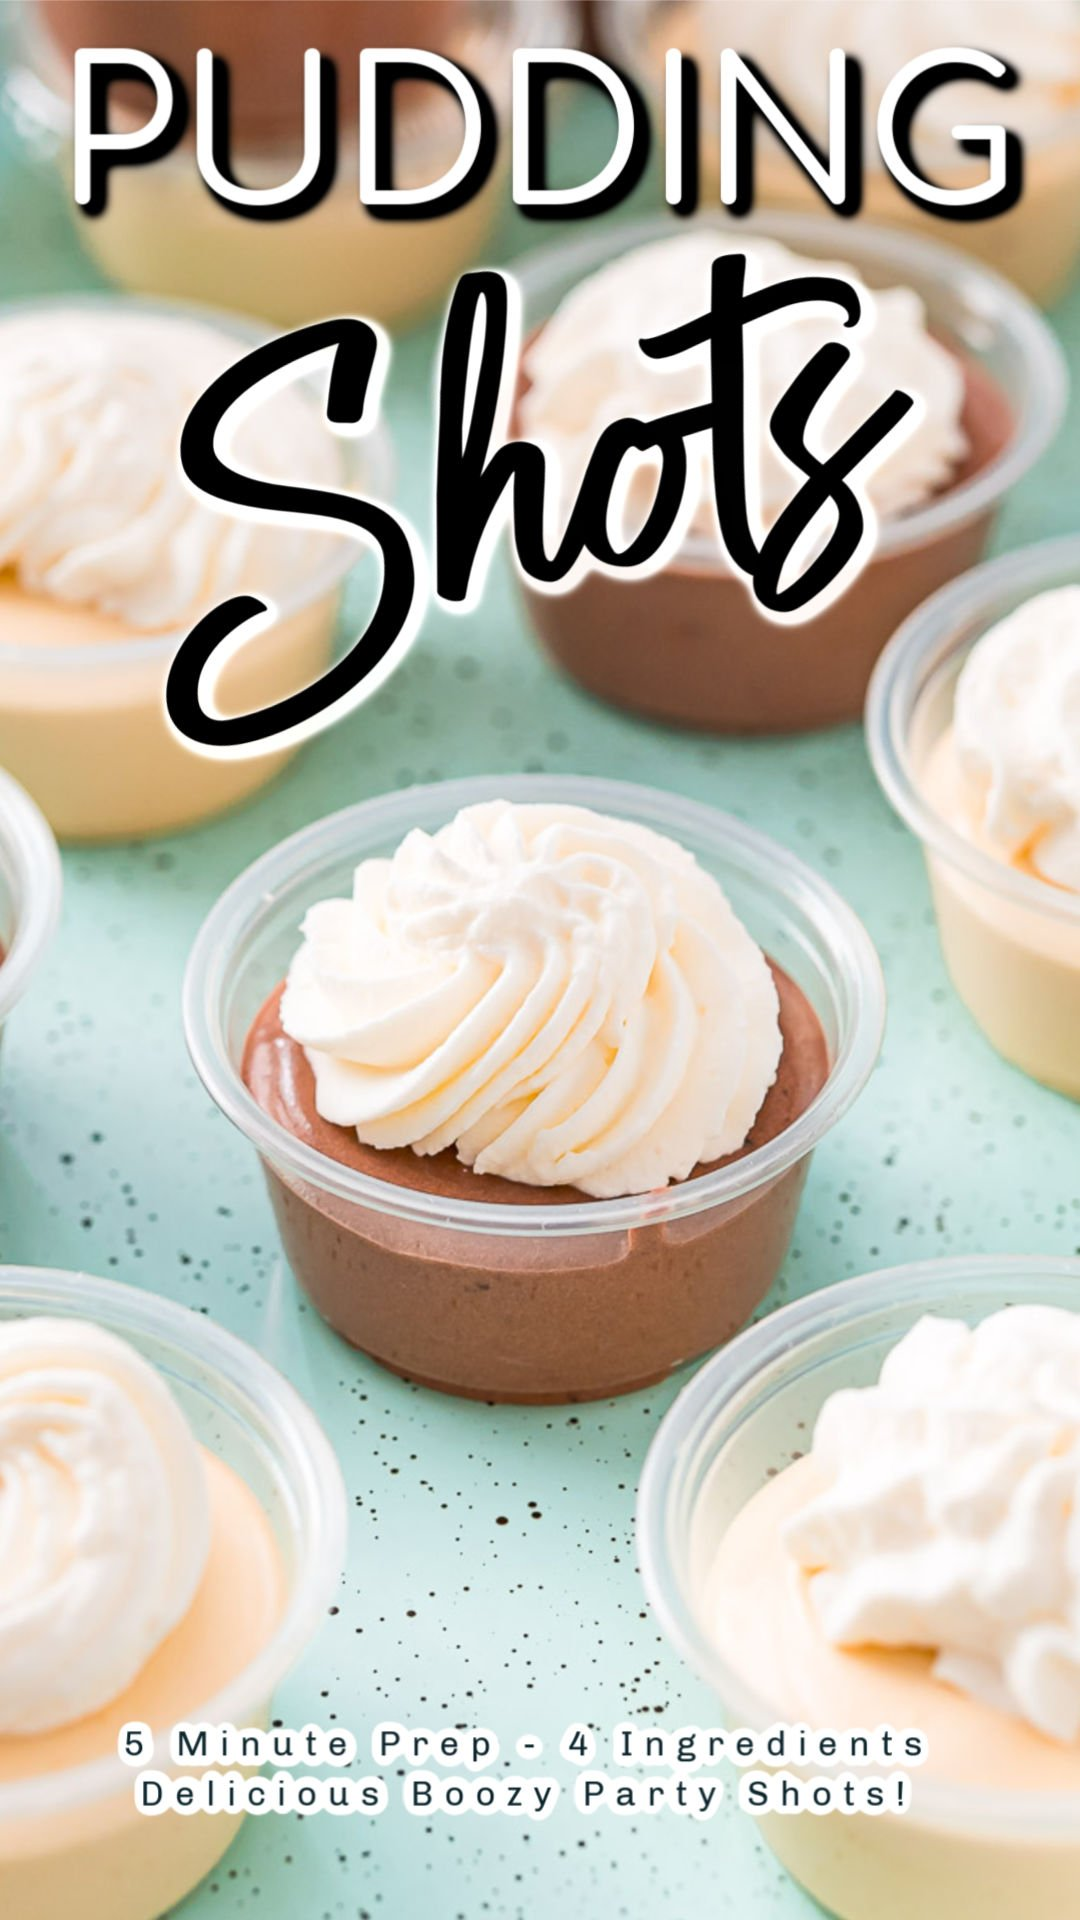 Pudding Shots are the drink/dessert combo you need for your next adult get-together! Requiring only 5 minutes of prep and 4 ingredients, you can make these with your choice of instant pudding and booze flavors.  via @sugarandsoulco